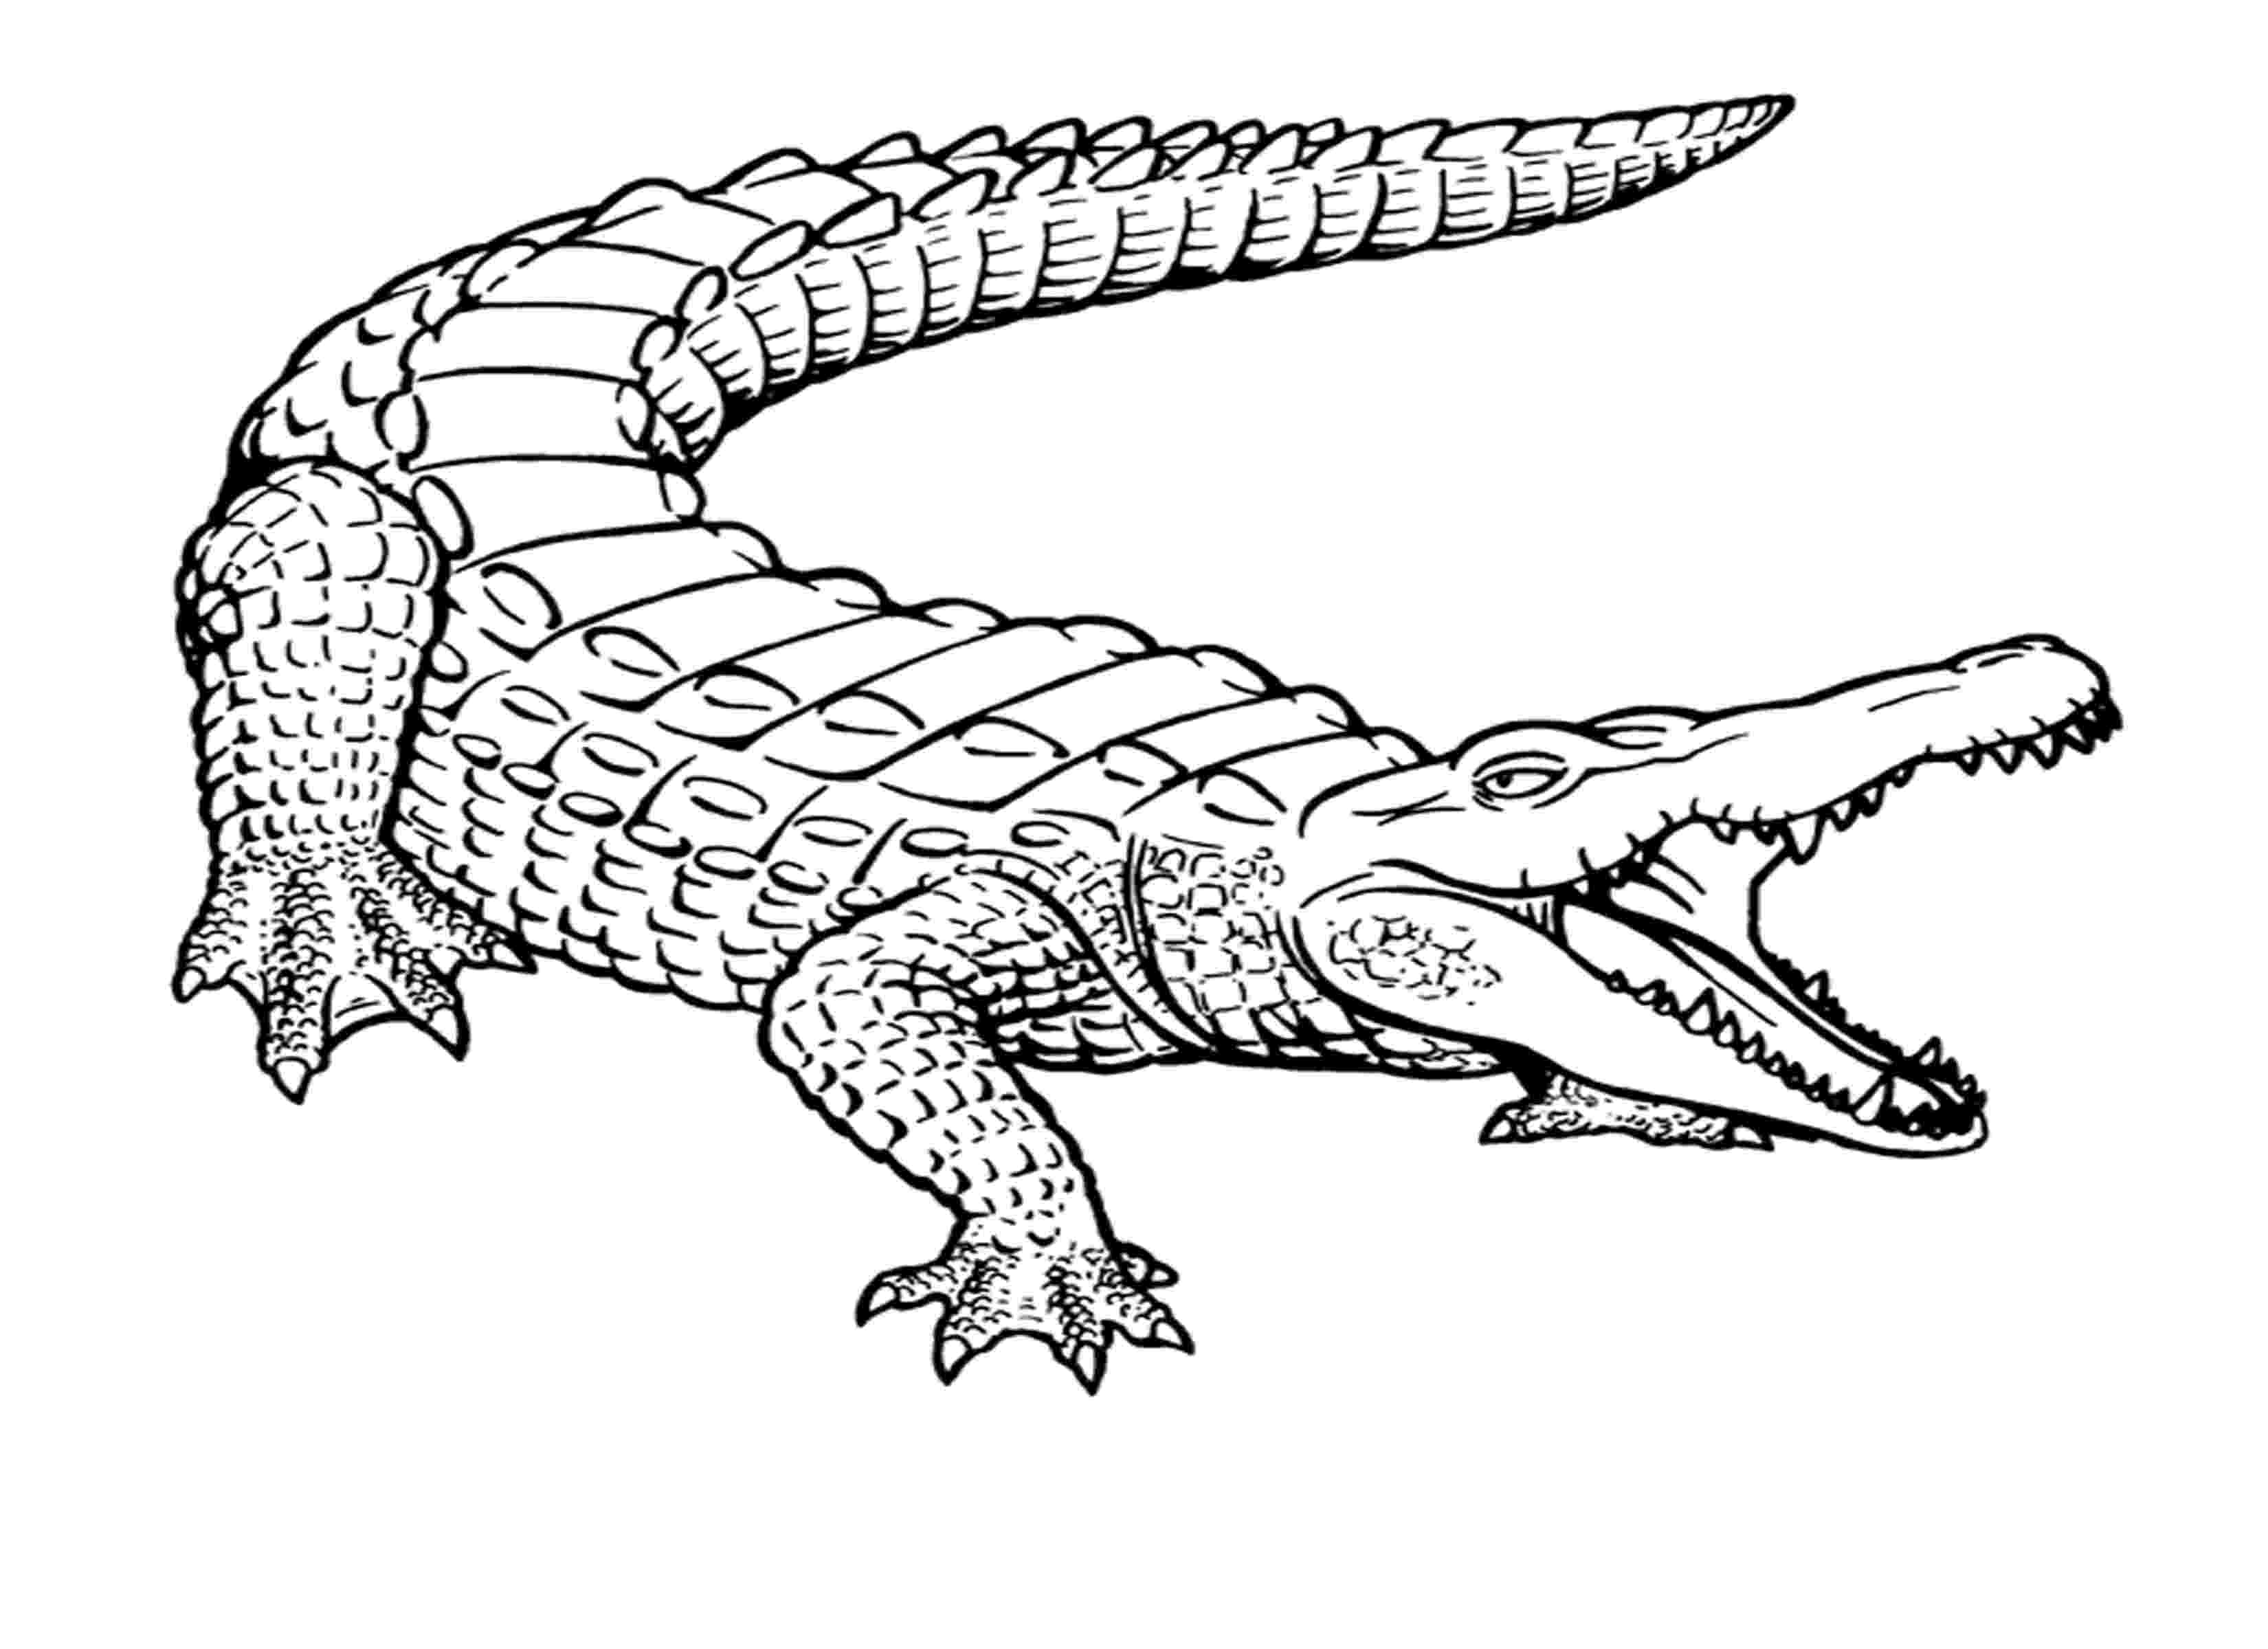 crocodile colouring free printable crocodile coloring pages for kids crocodile colouring